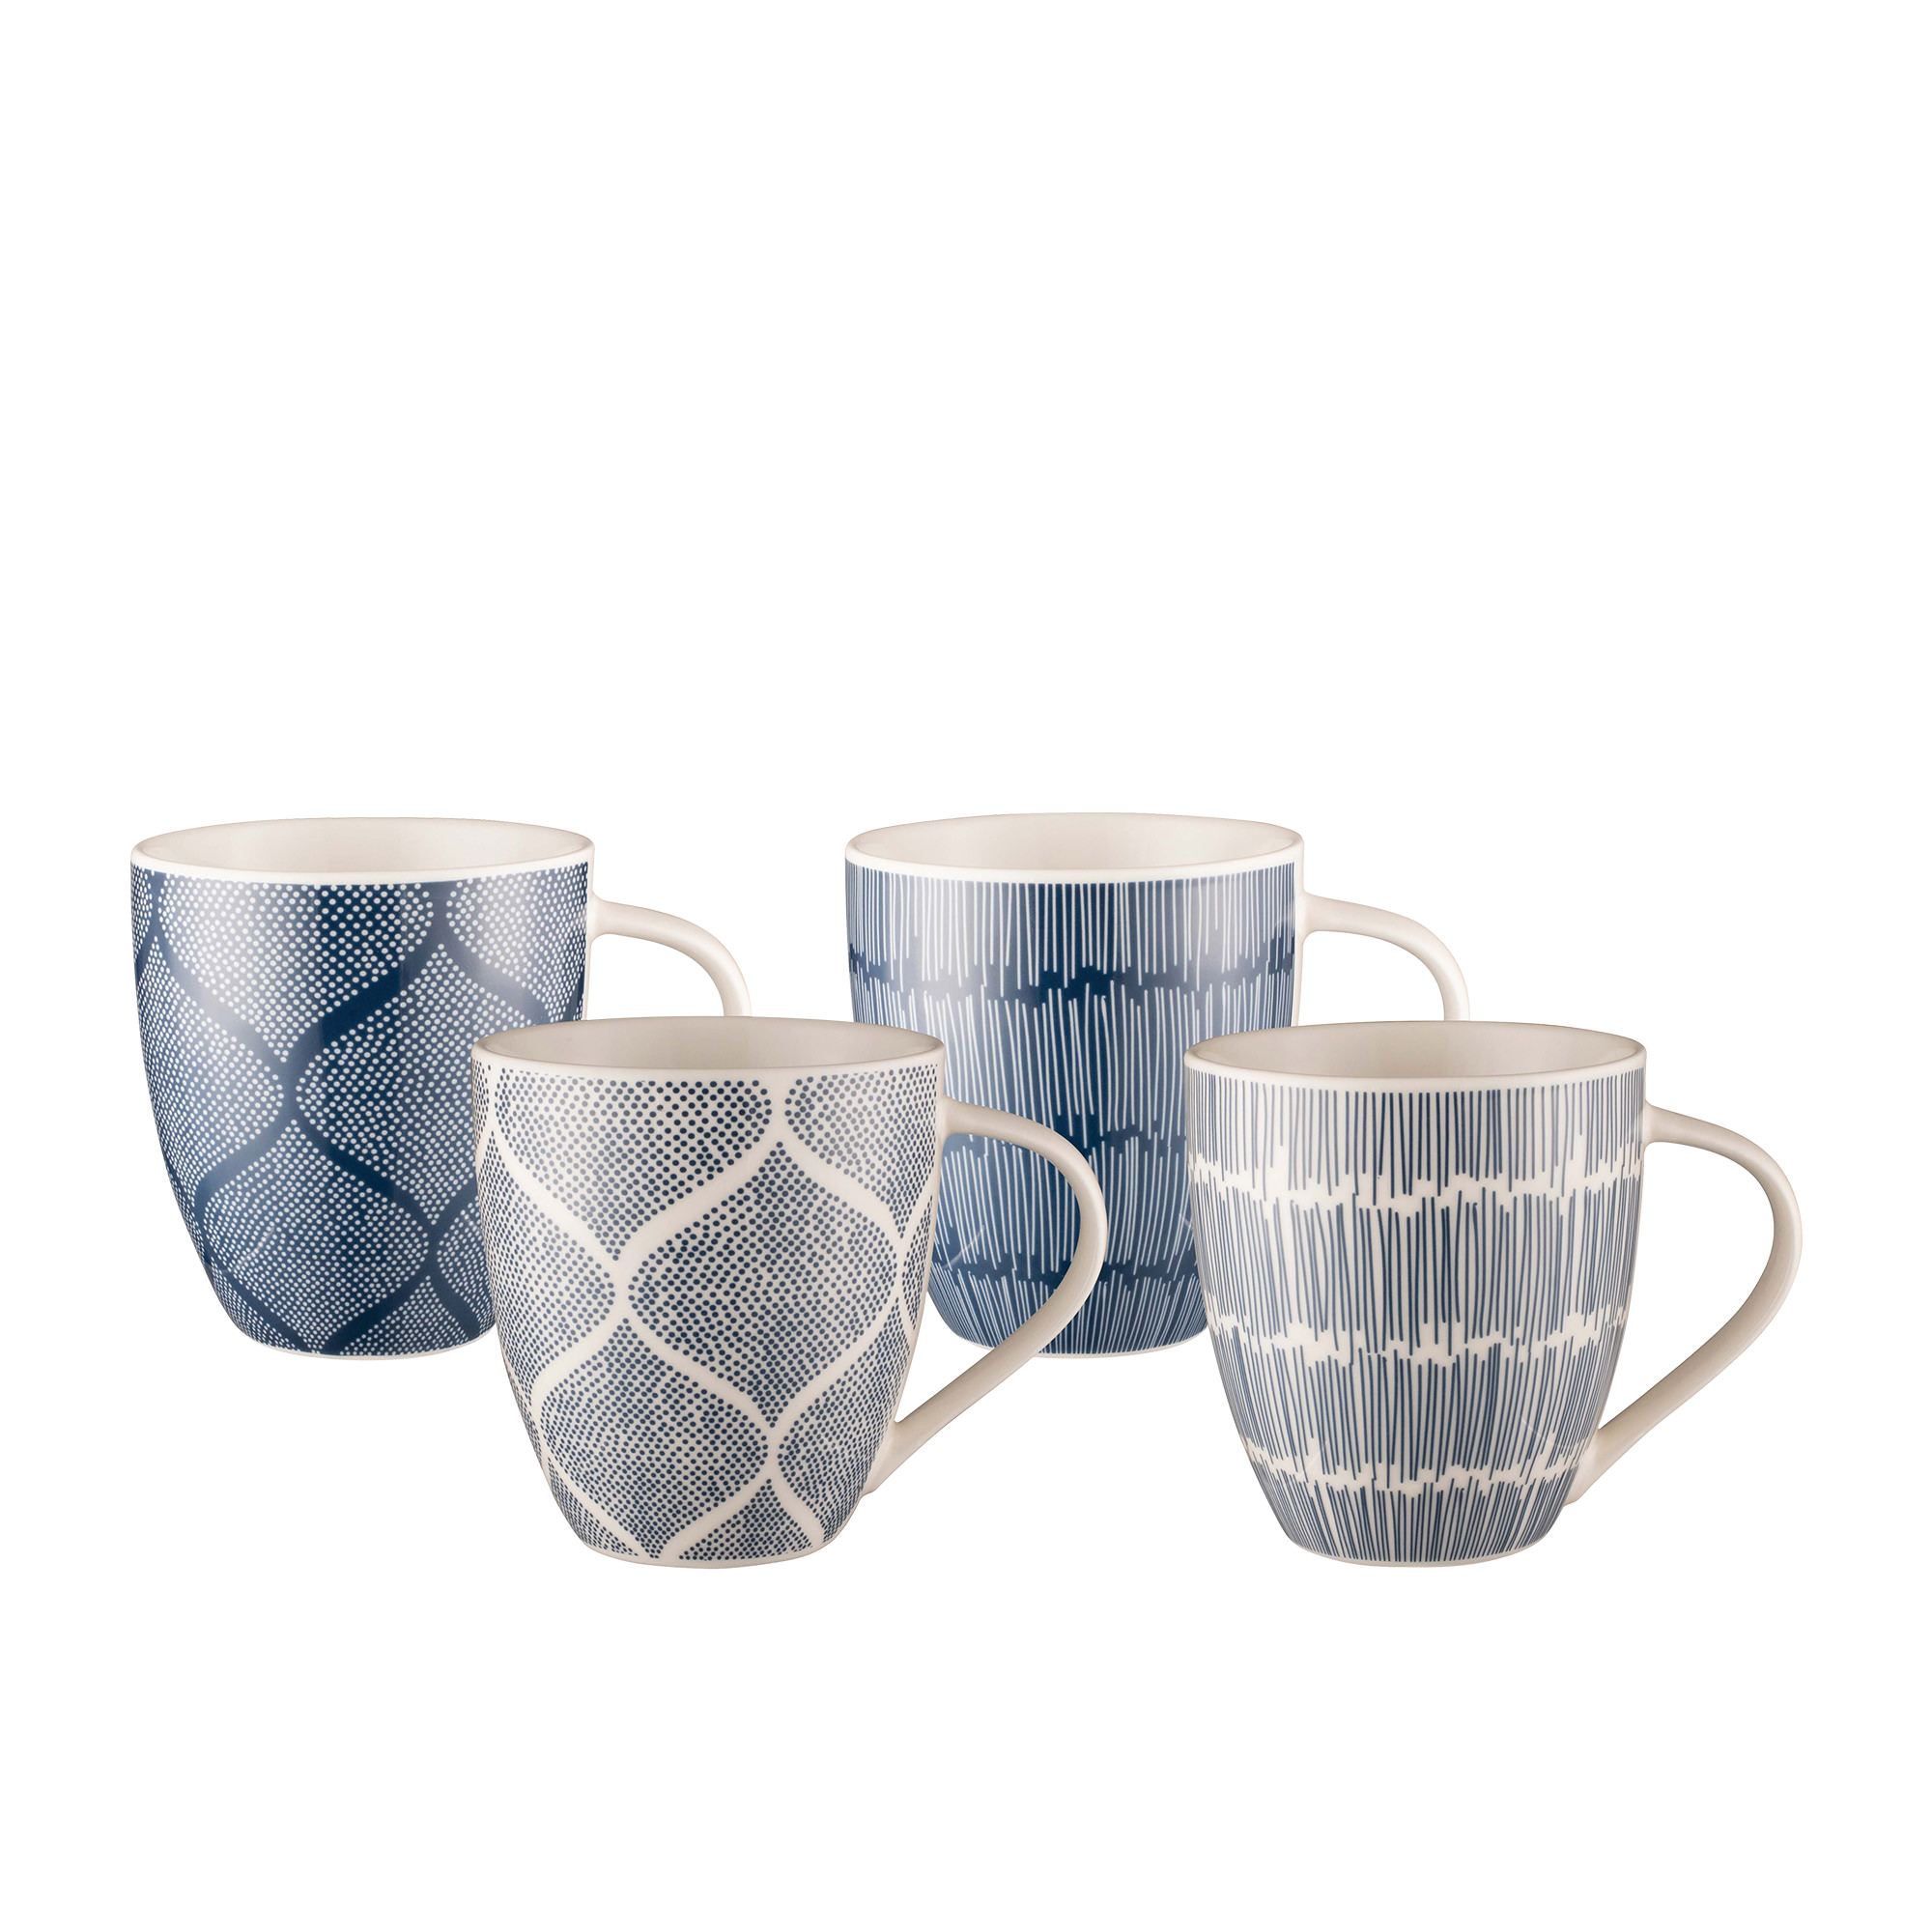 Bundanoon Mug Company 4pc Mug Set 500ml Indigo Sketch